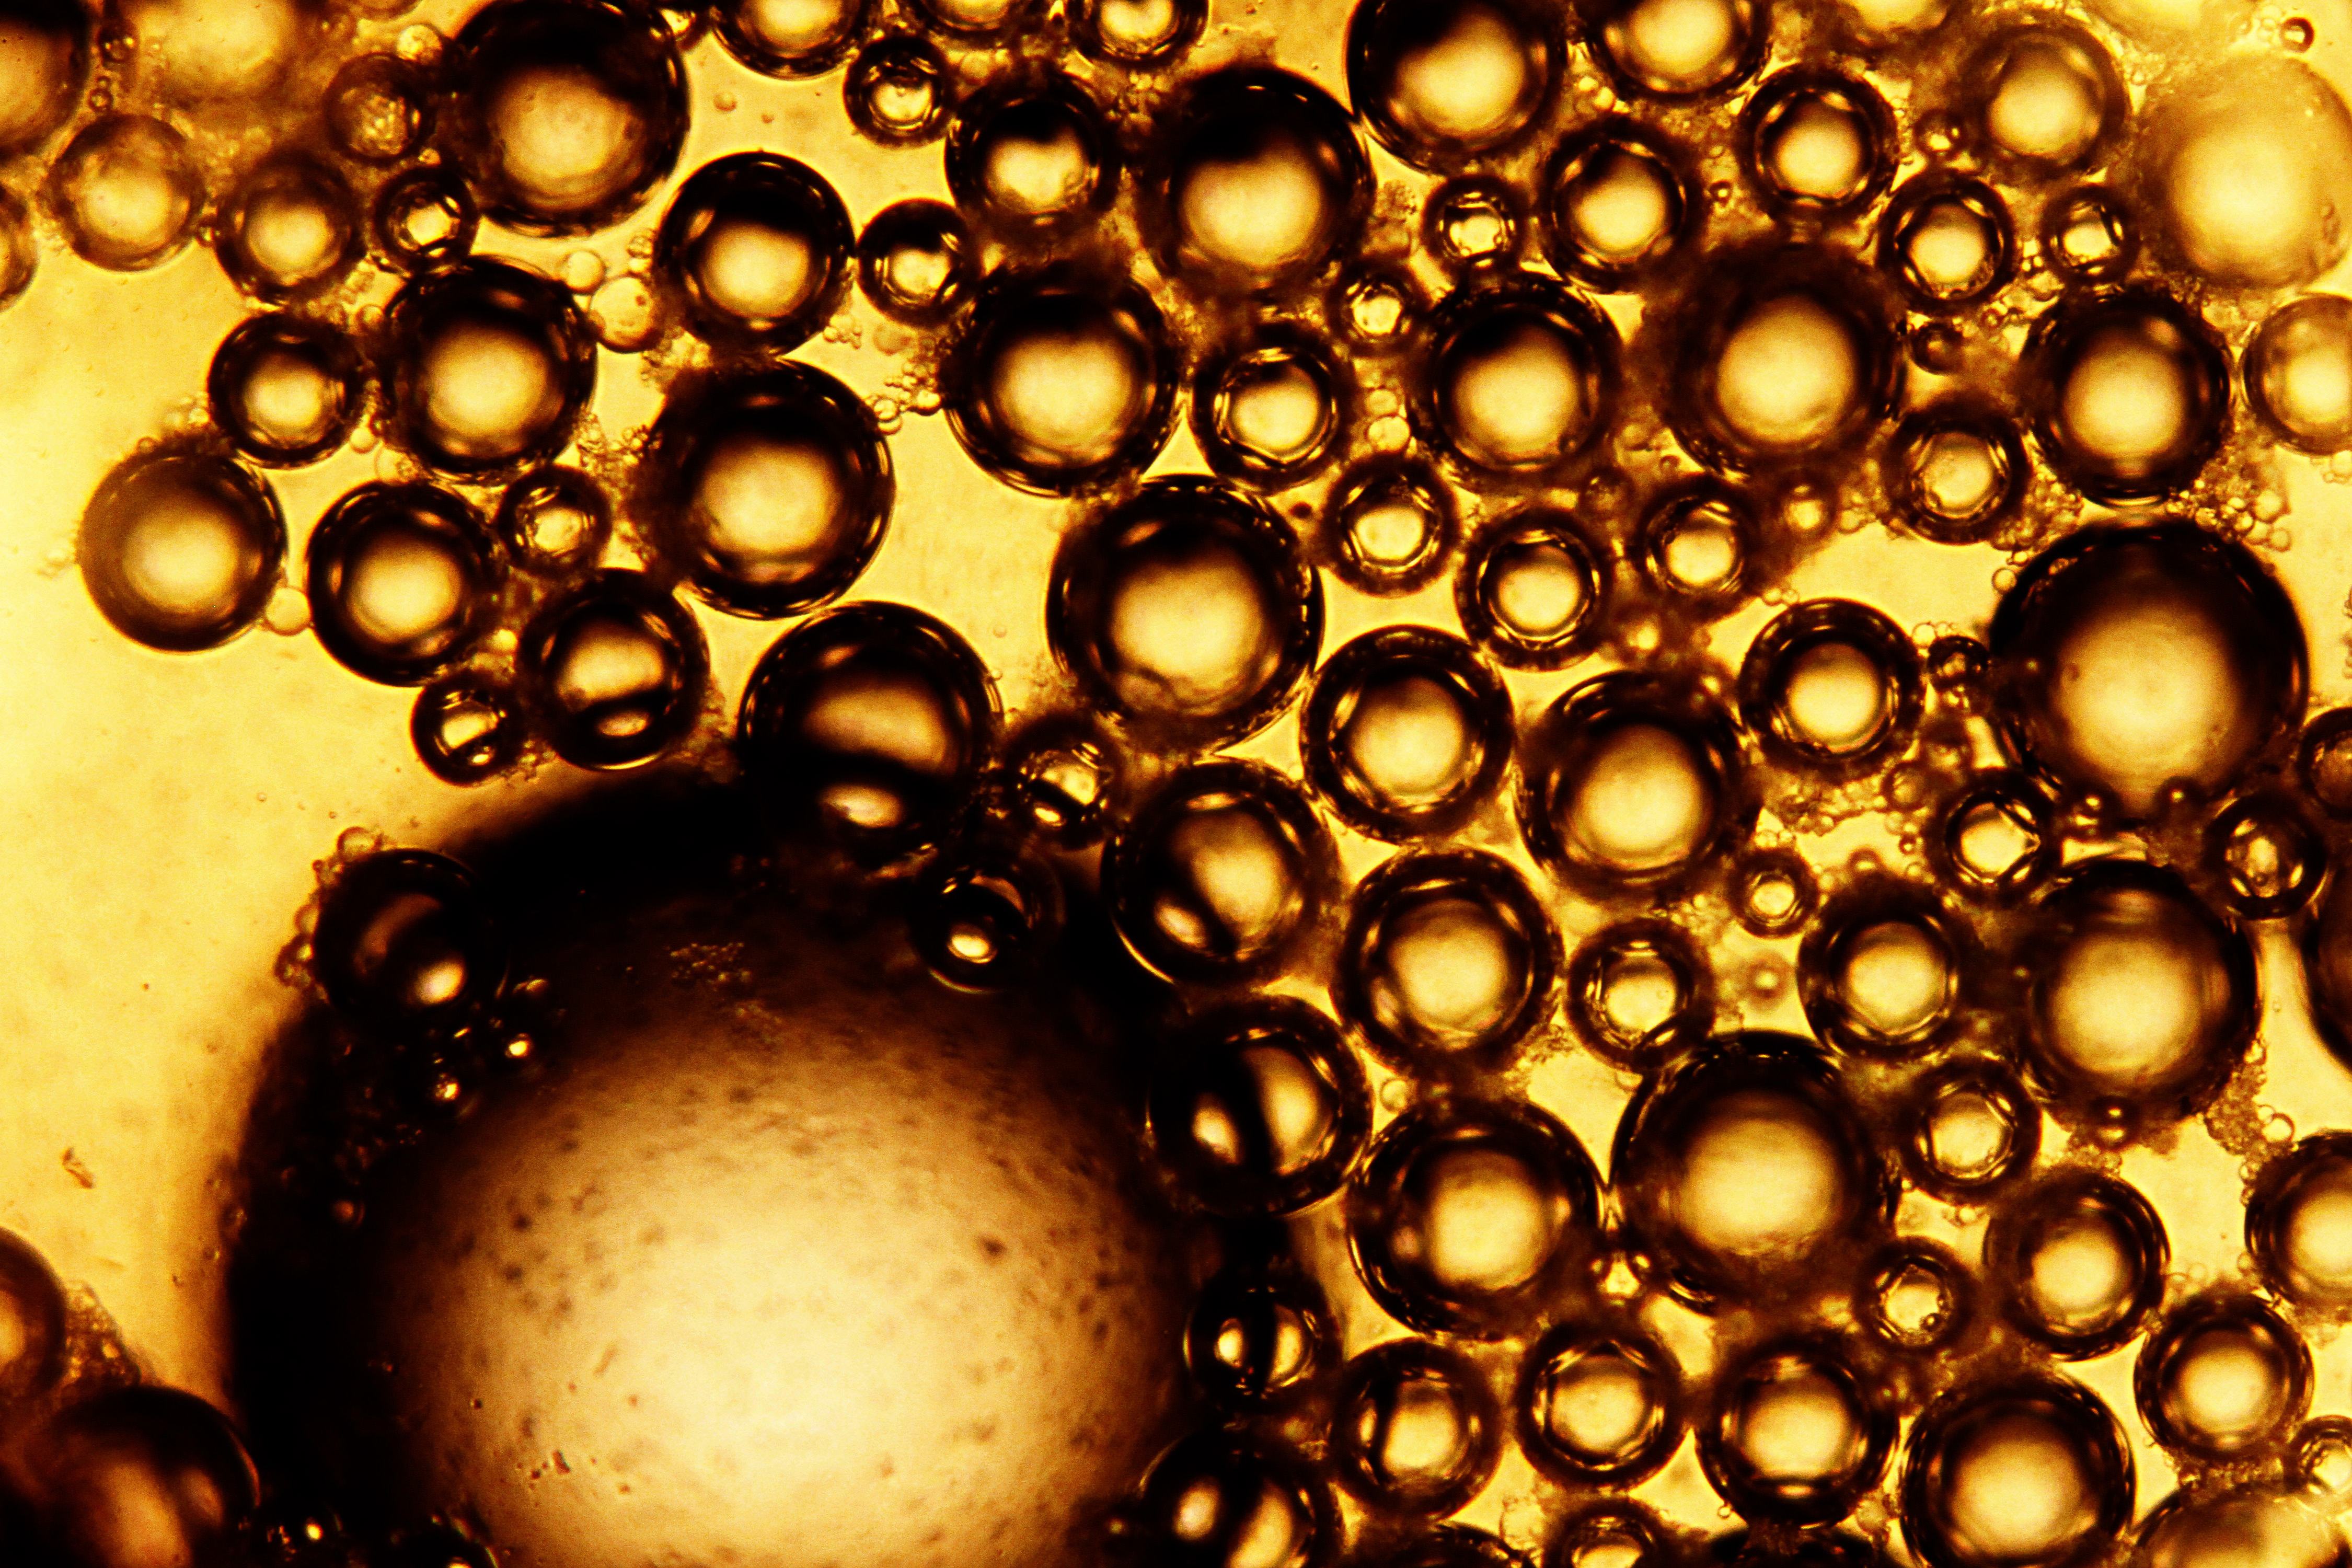 68060 download wallpaper Macro, Liquid, Texture, Brown, Bubbles screensavers and pictures for free